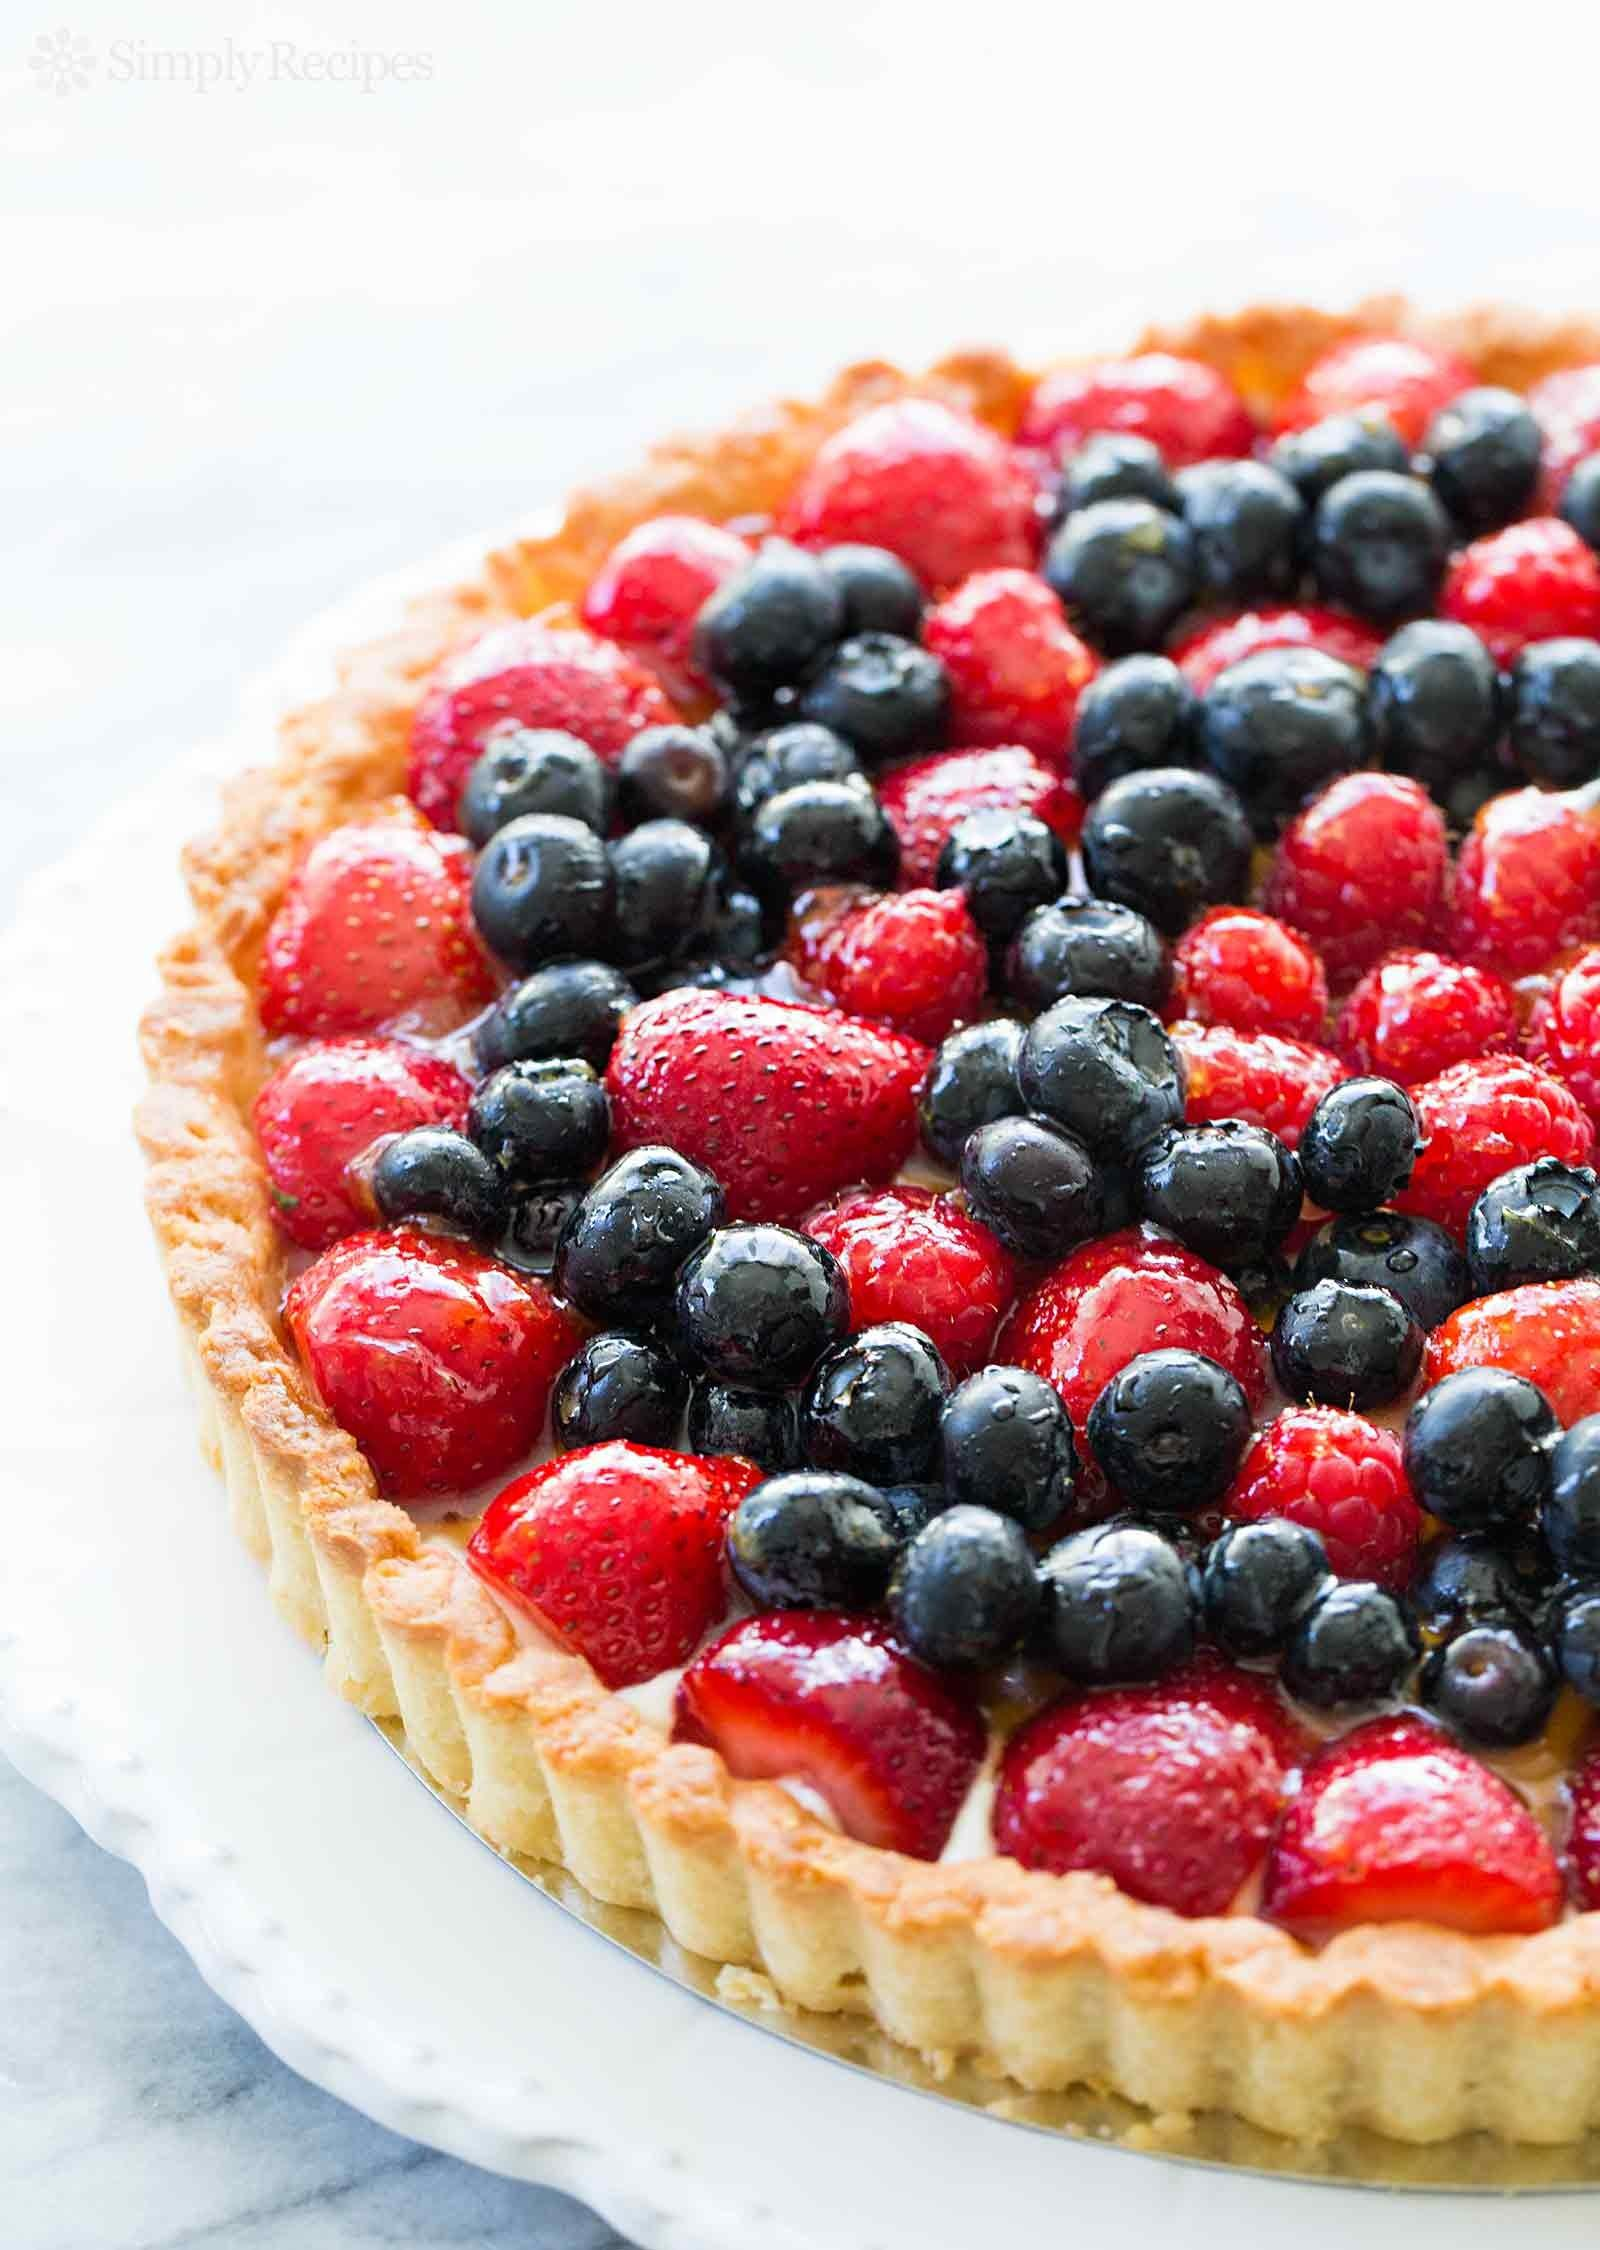 Berry Tart Recipe Simplyrecipes